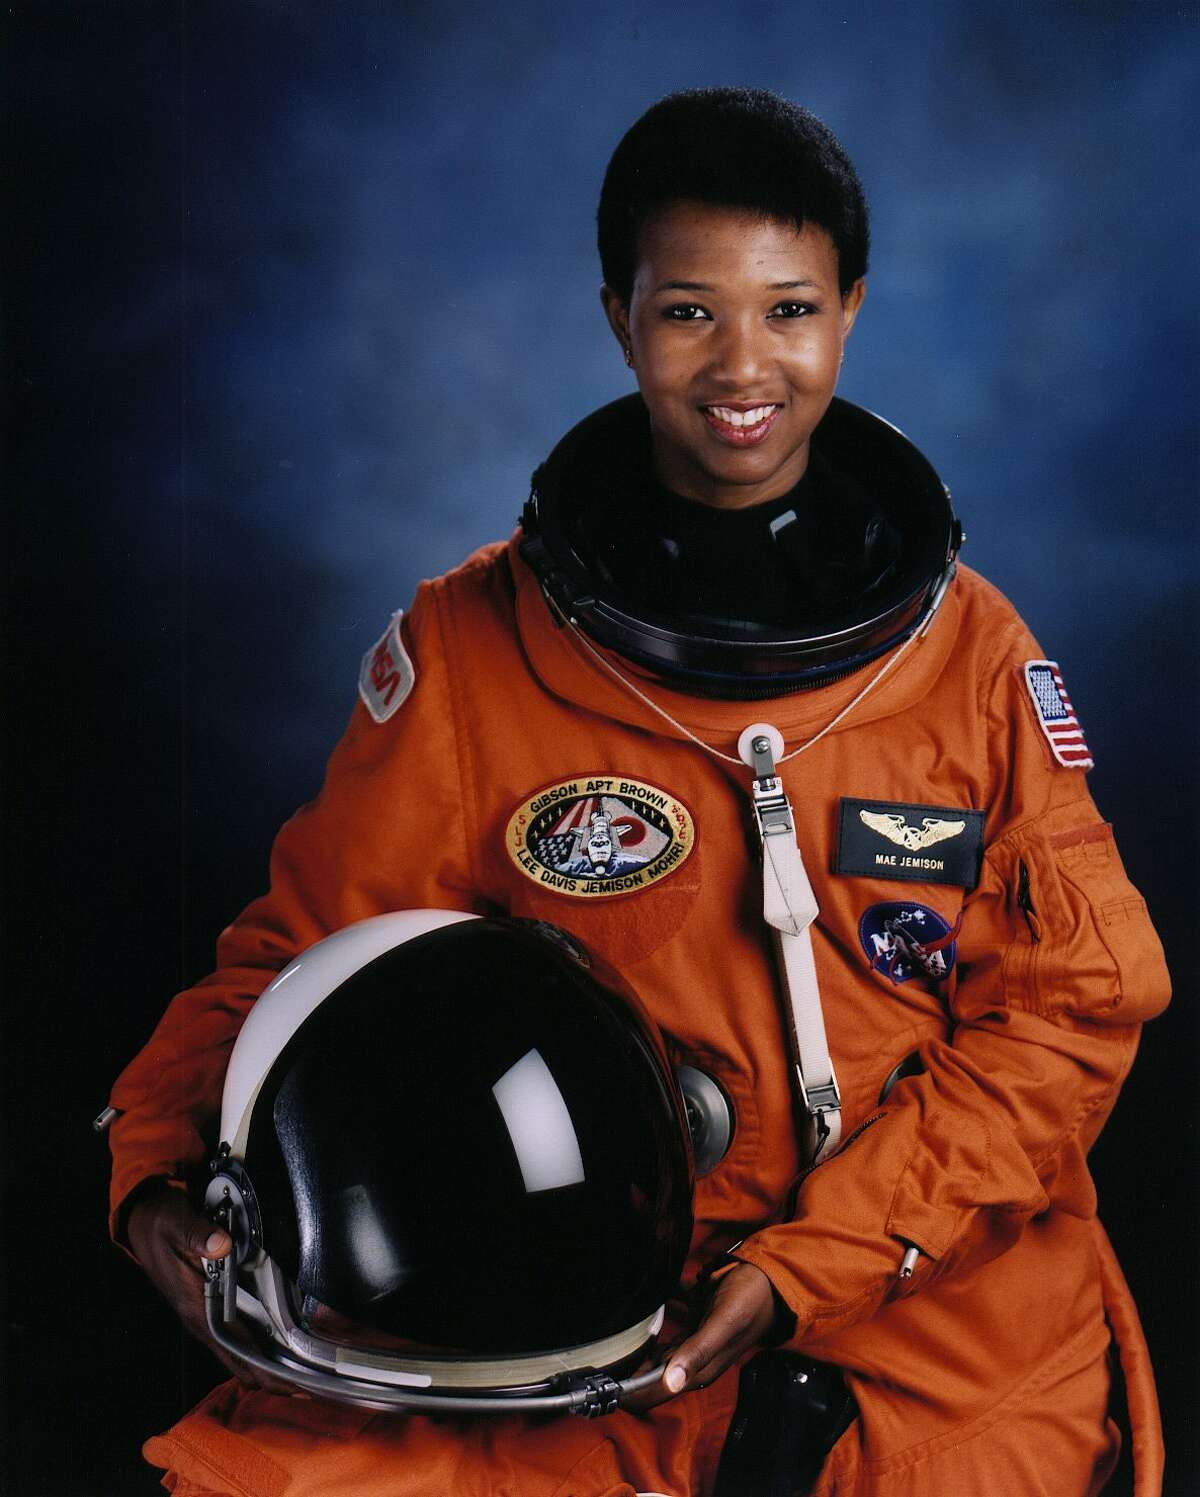 Astronaut Mae Jemison, first African-American woman in space as STS-47 Endeavour mission specialist.